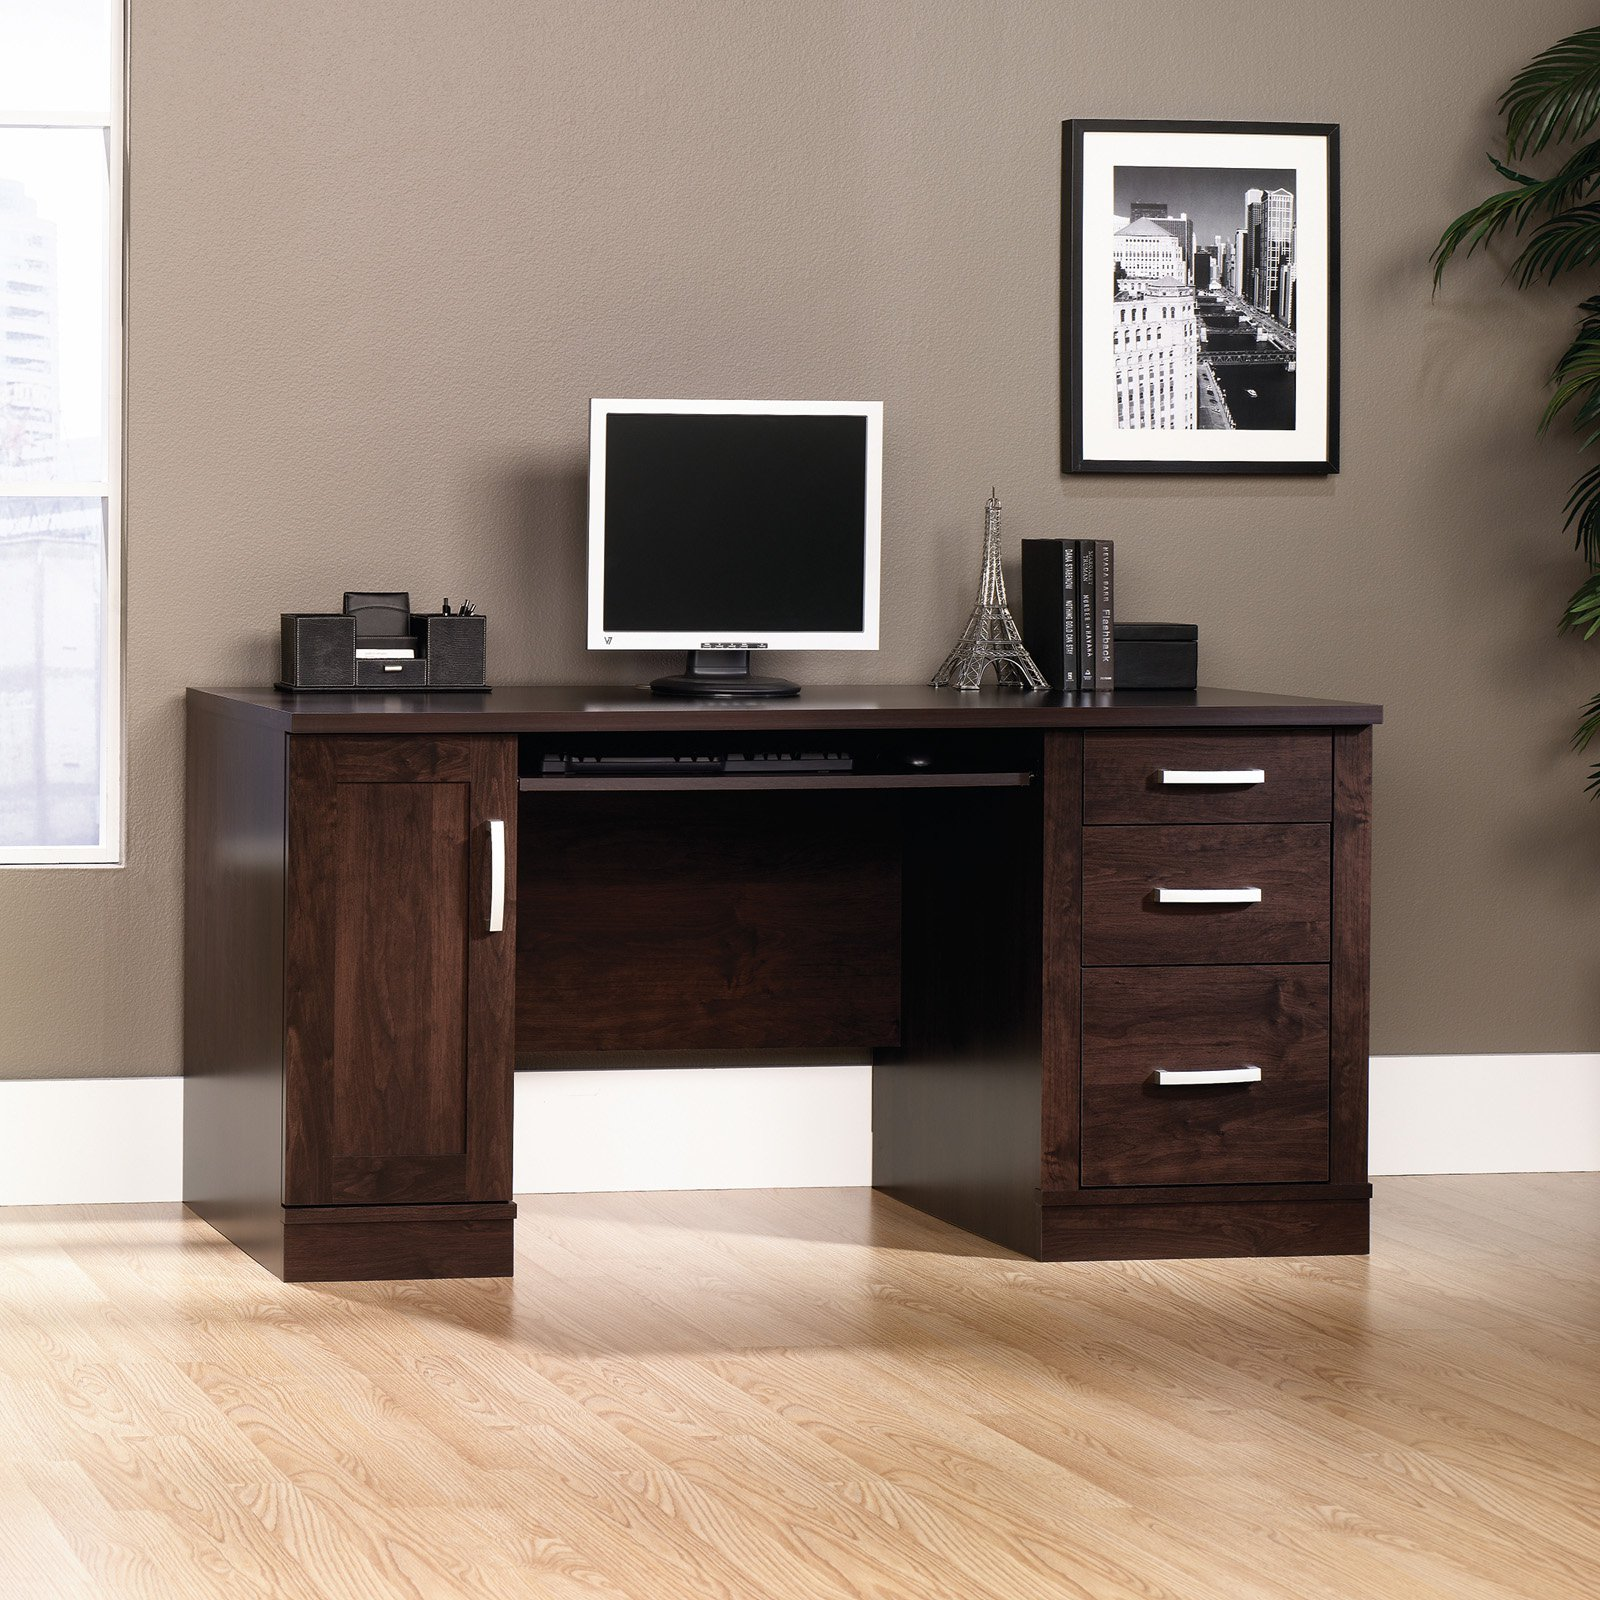 Charmant Sauder Office Port Computer Credenza Desk With Optional Hutch